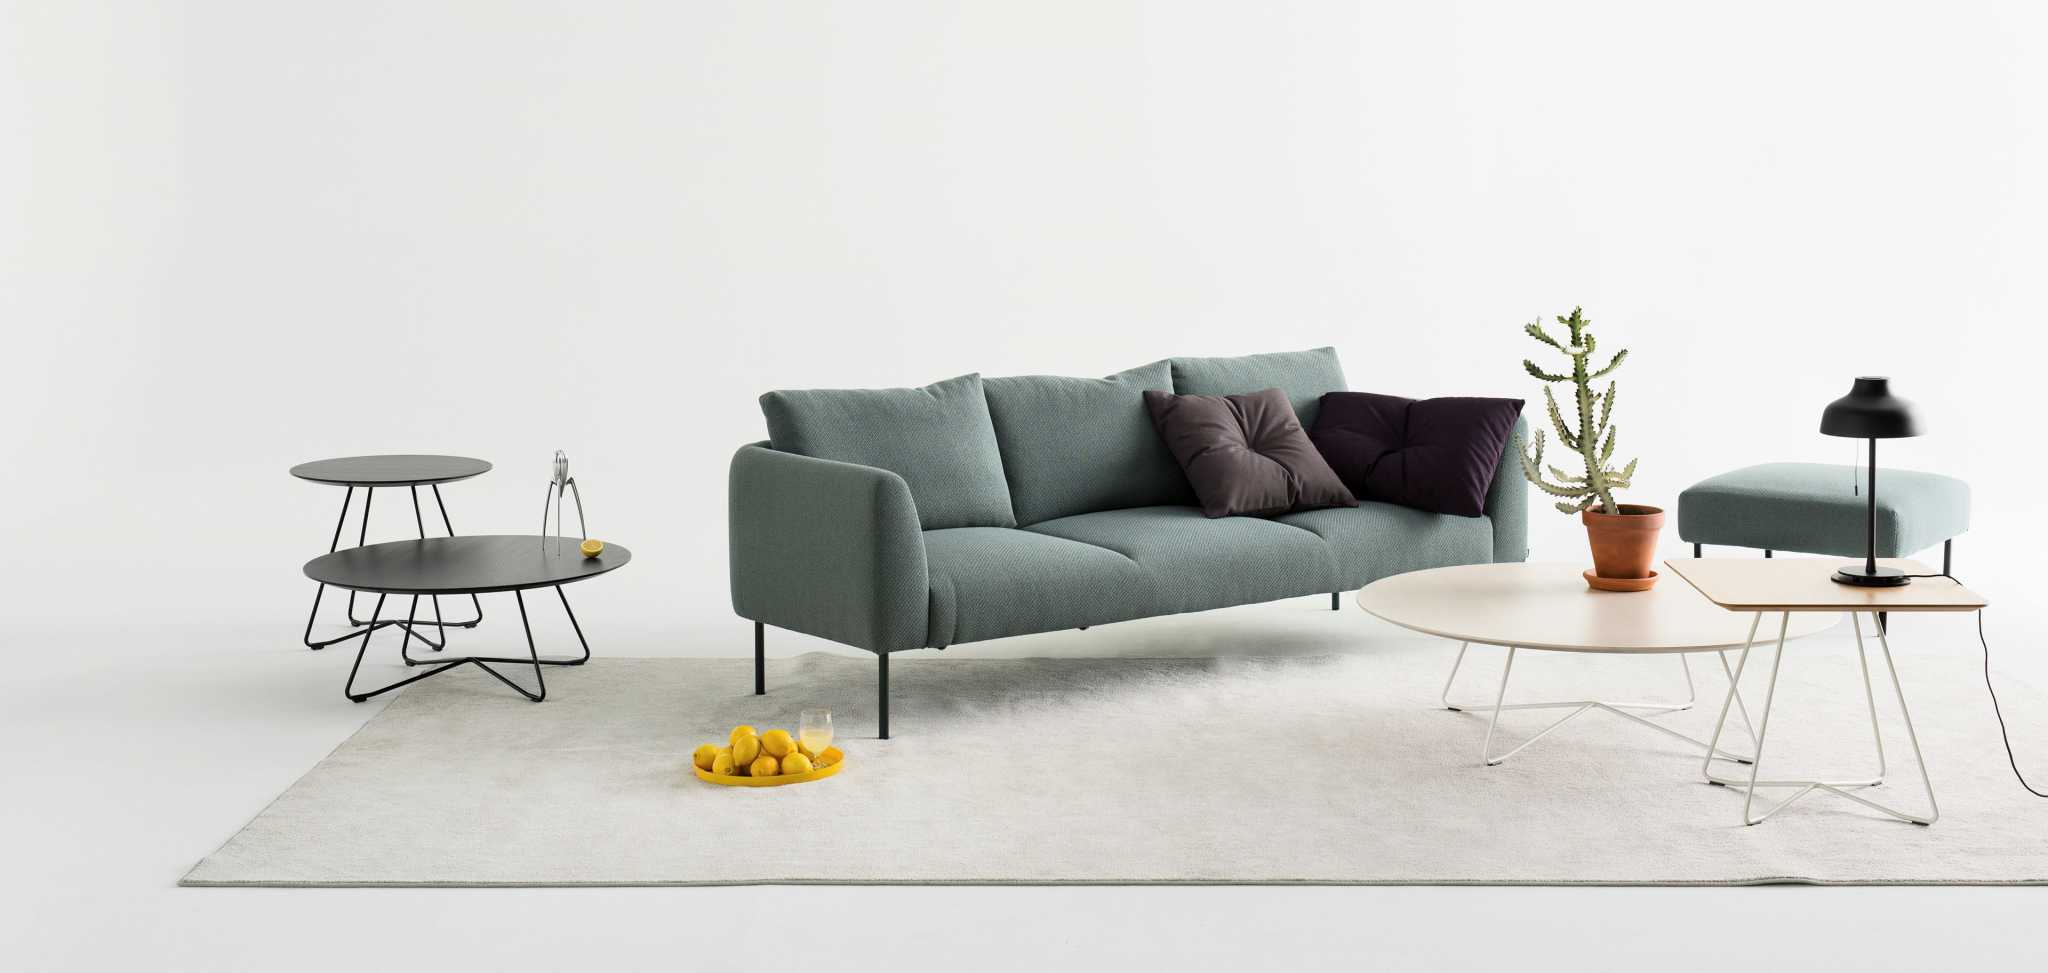 Large grey sofa with a sofa table